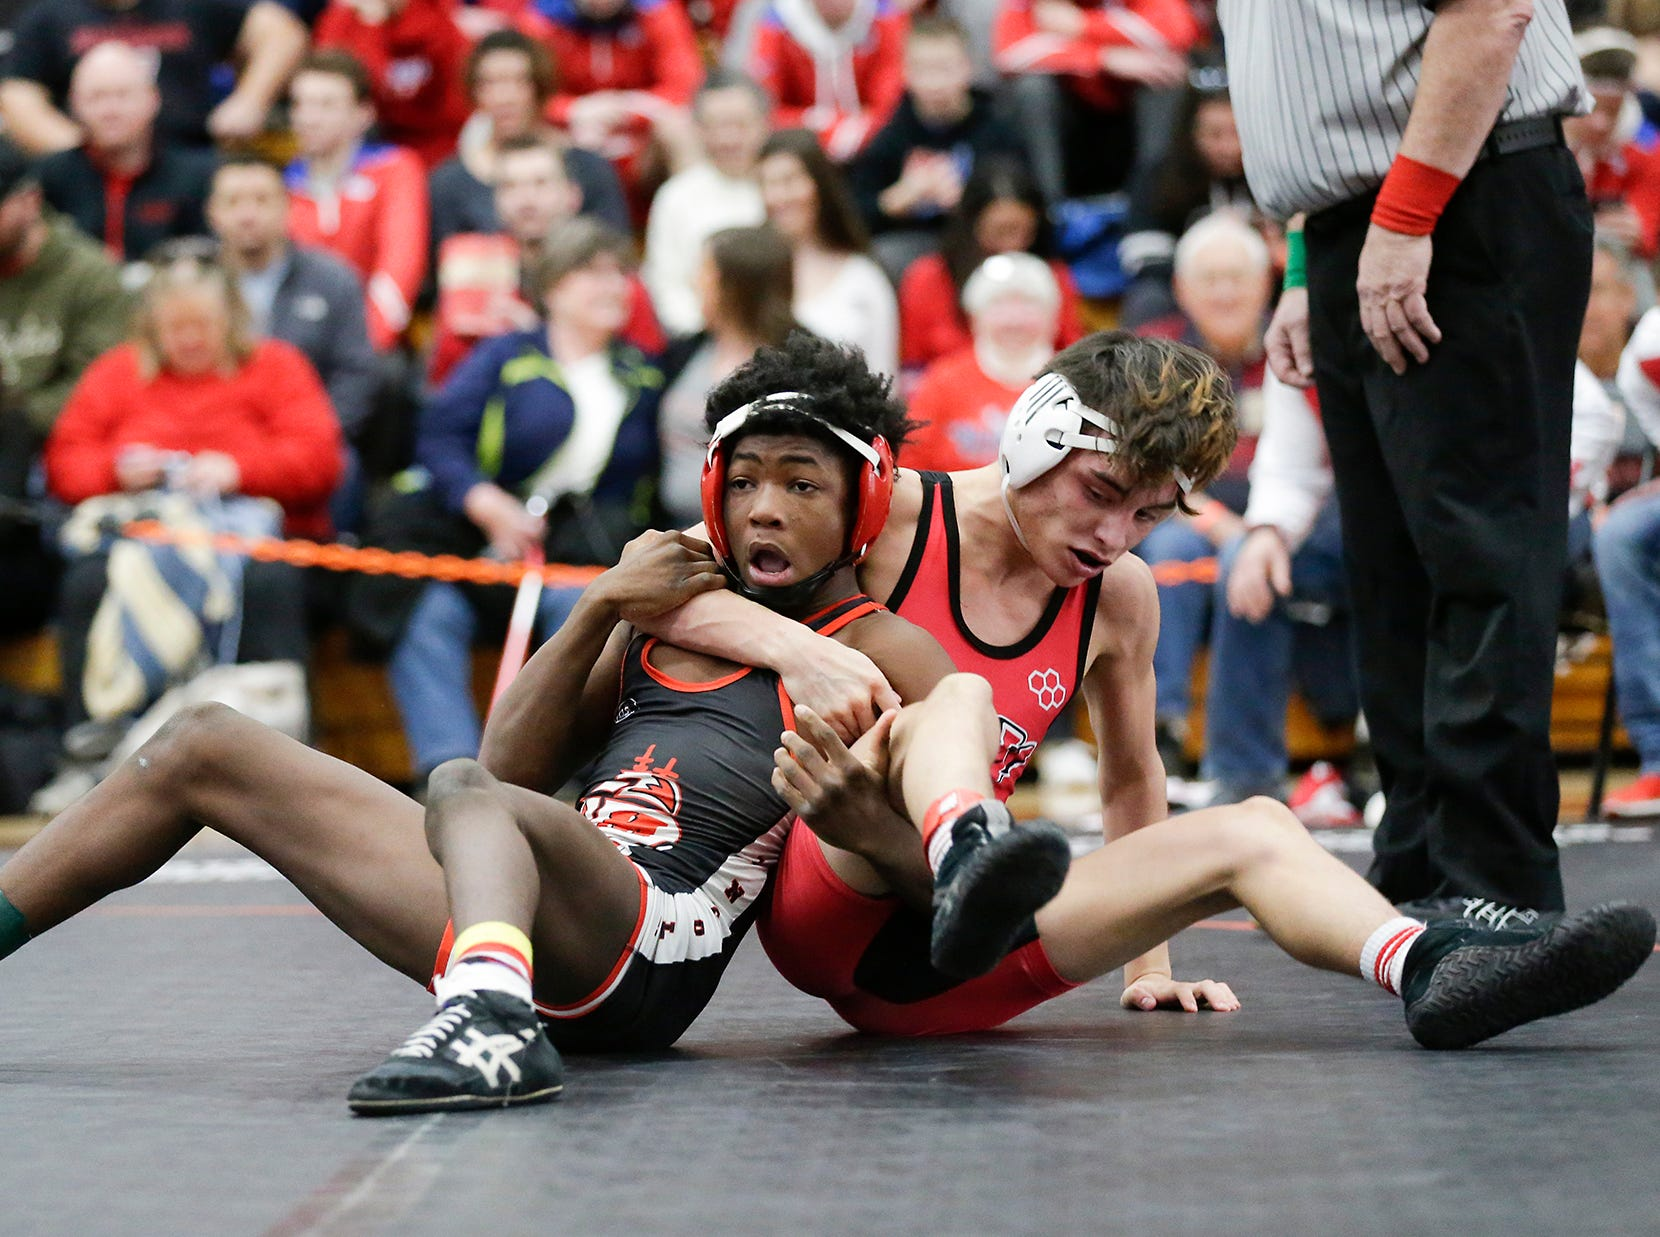 Dante Caiani of Neenah High School wrestles Demario Ford of Manitowoc Lincoln High School in the 120 pound weight class during the WIAA sectionals Saturday, February 16, 2019 in Hartford, Wis. Ford won with a score of 2-1. Doug Raflik/USA TODAY NETWORK-Wisconsin